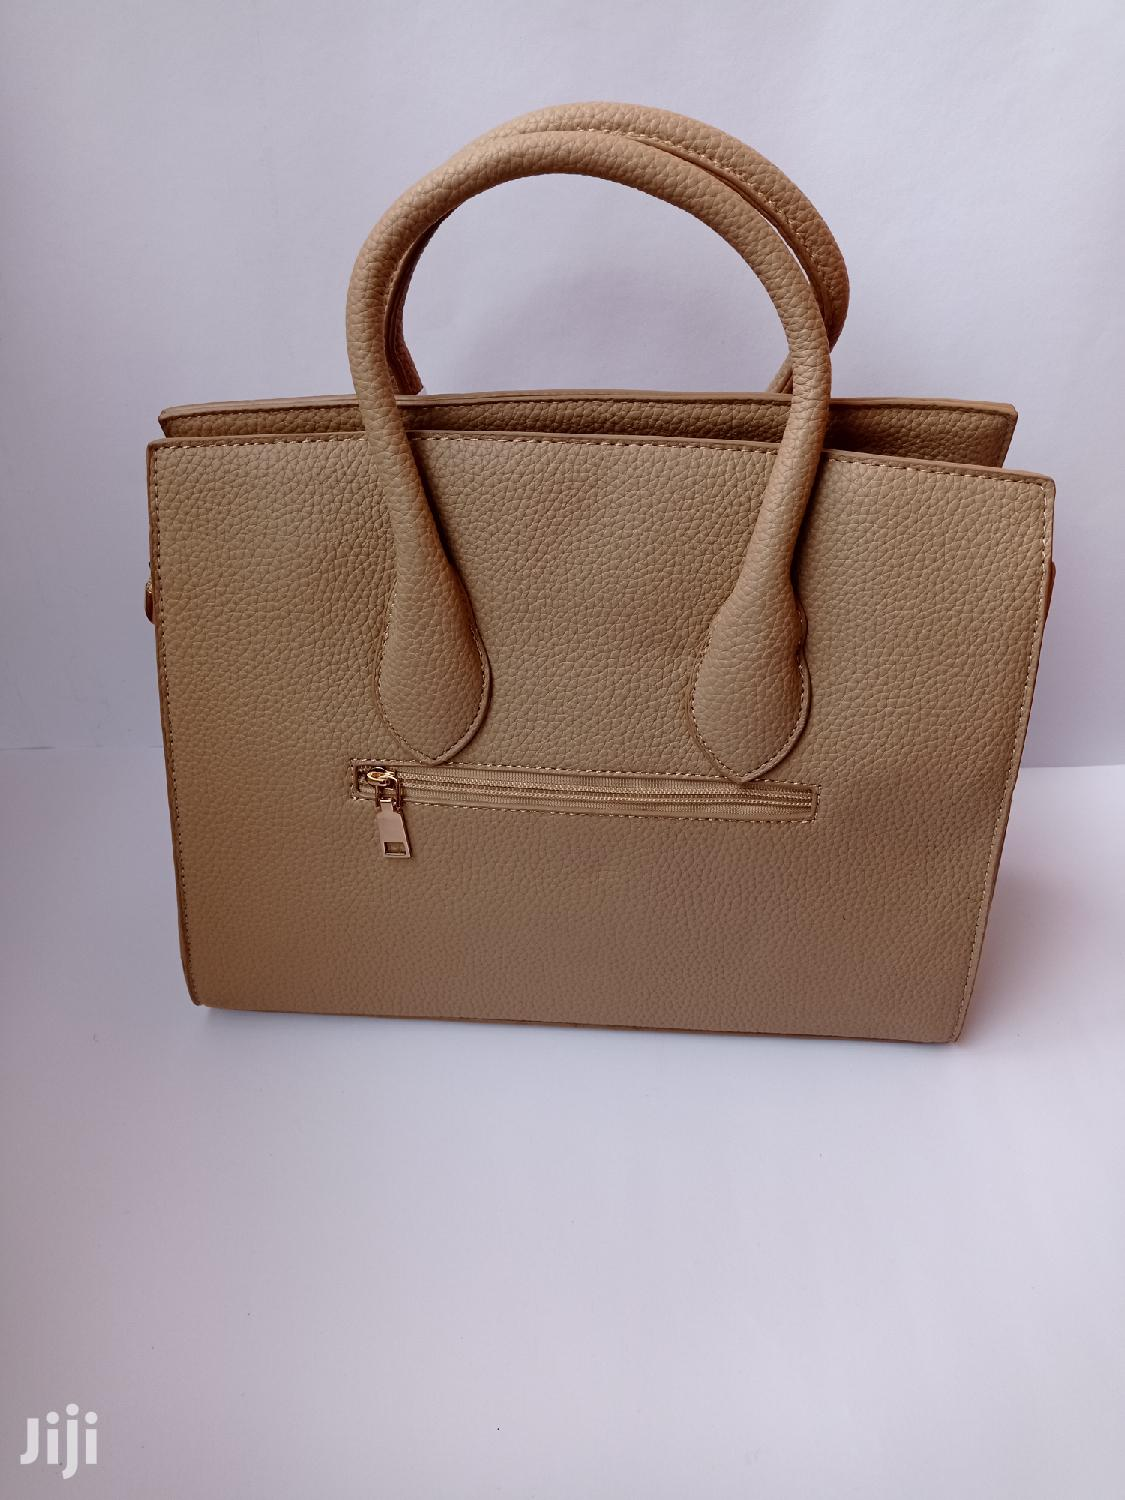 Beige Handbags Available | Bags for sale in Nairobi Central, Nairobi, Kenya